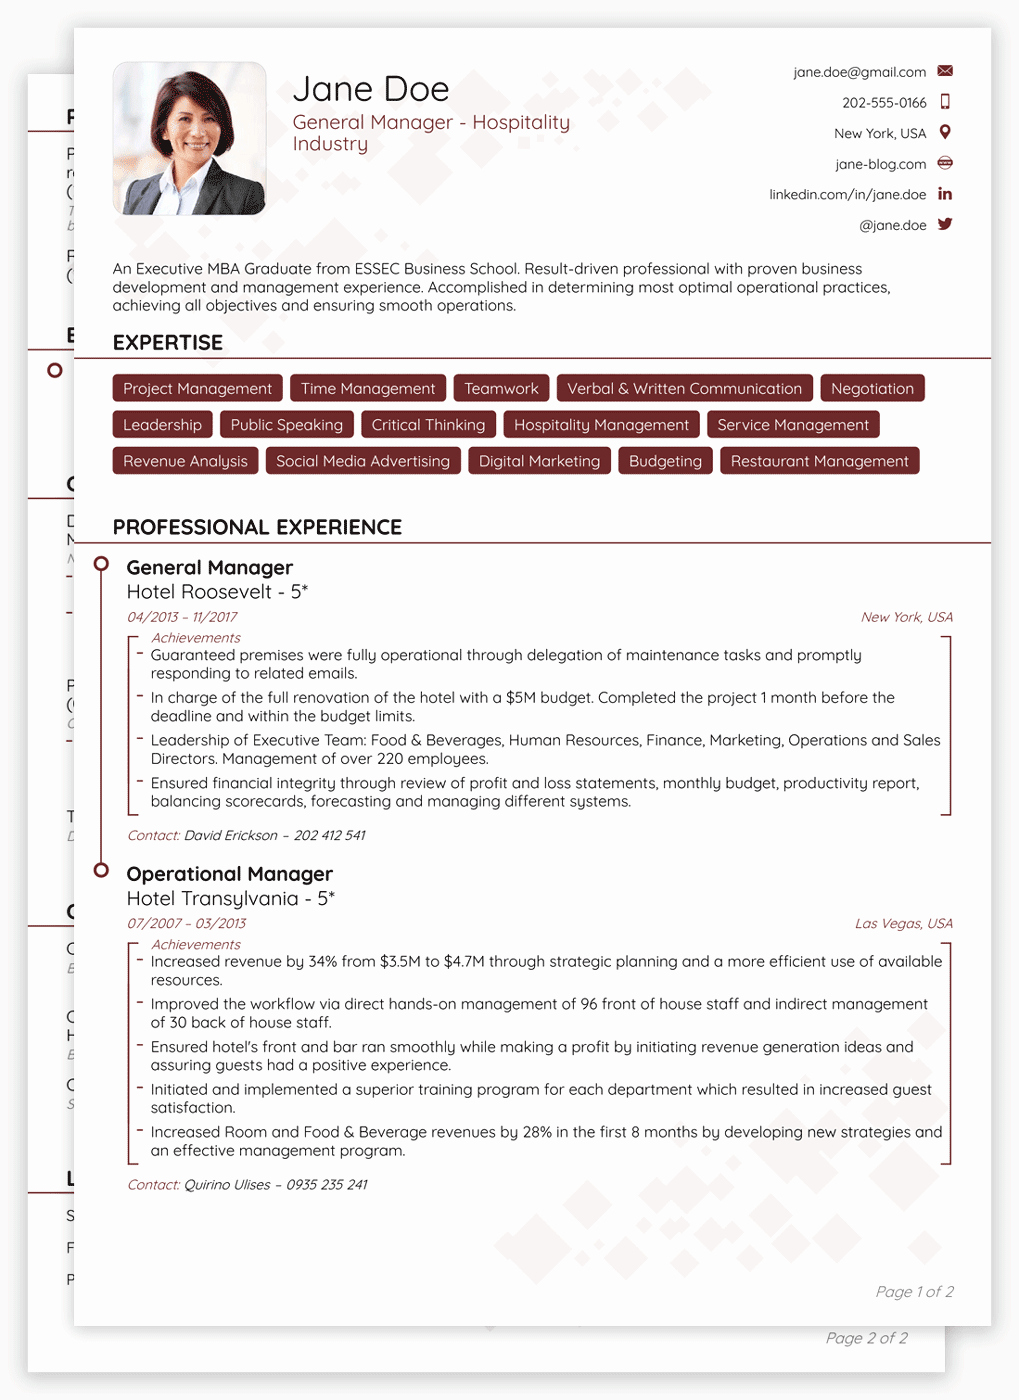 Format for Curriculum Vitae Awesome 2018 Cv Templates [download] Create Yours In 5 Minutes